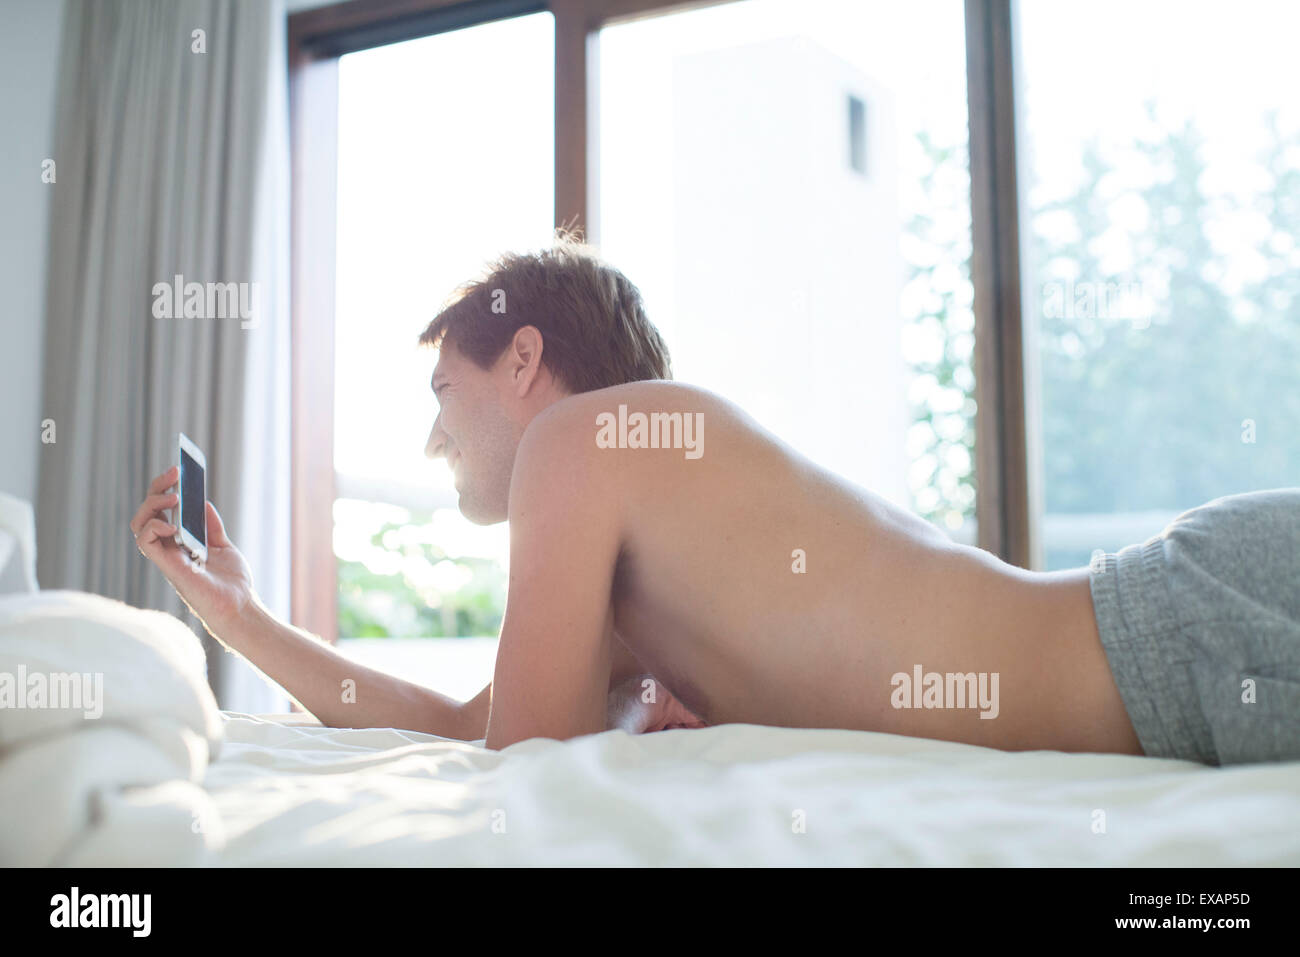 Man lying in bed using multimedia smartphone - Stock Image